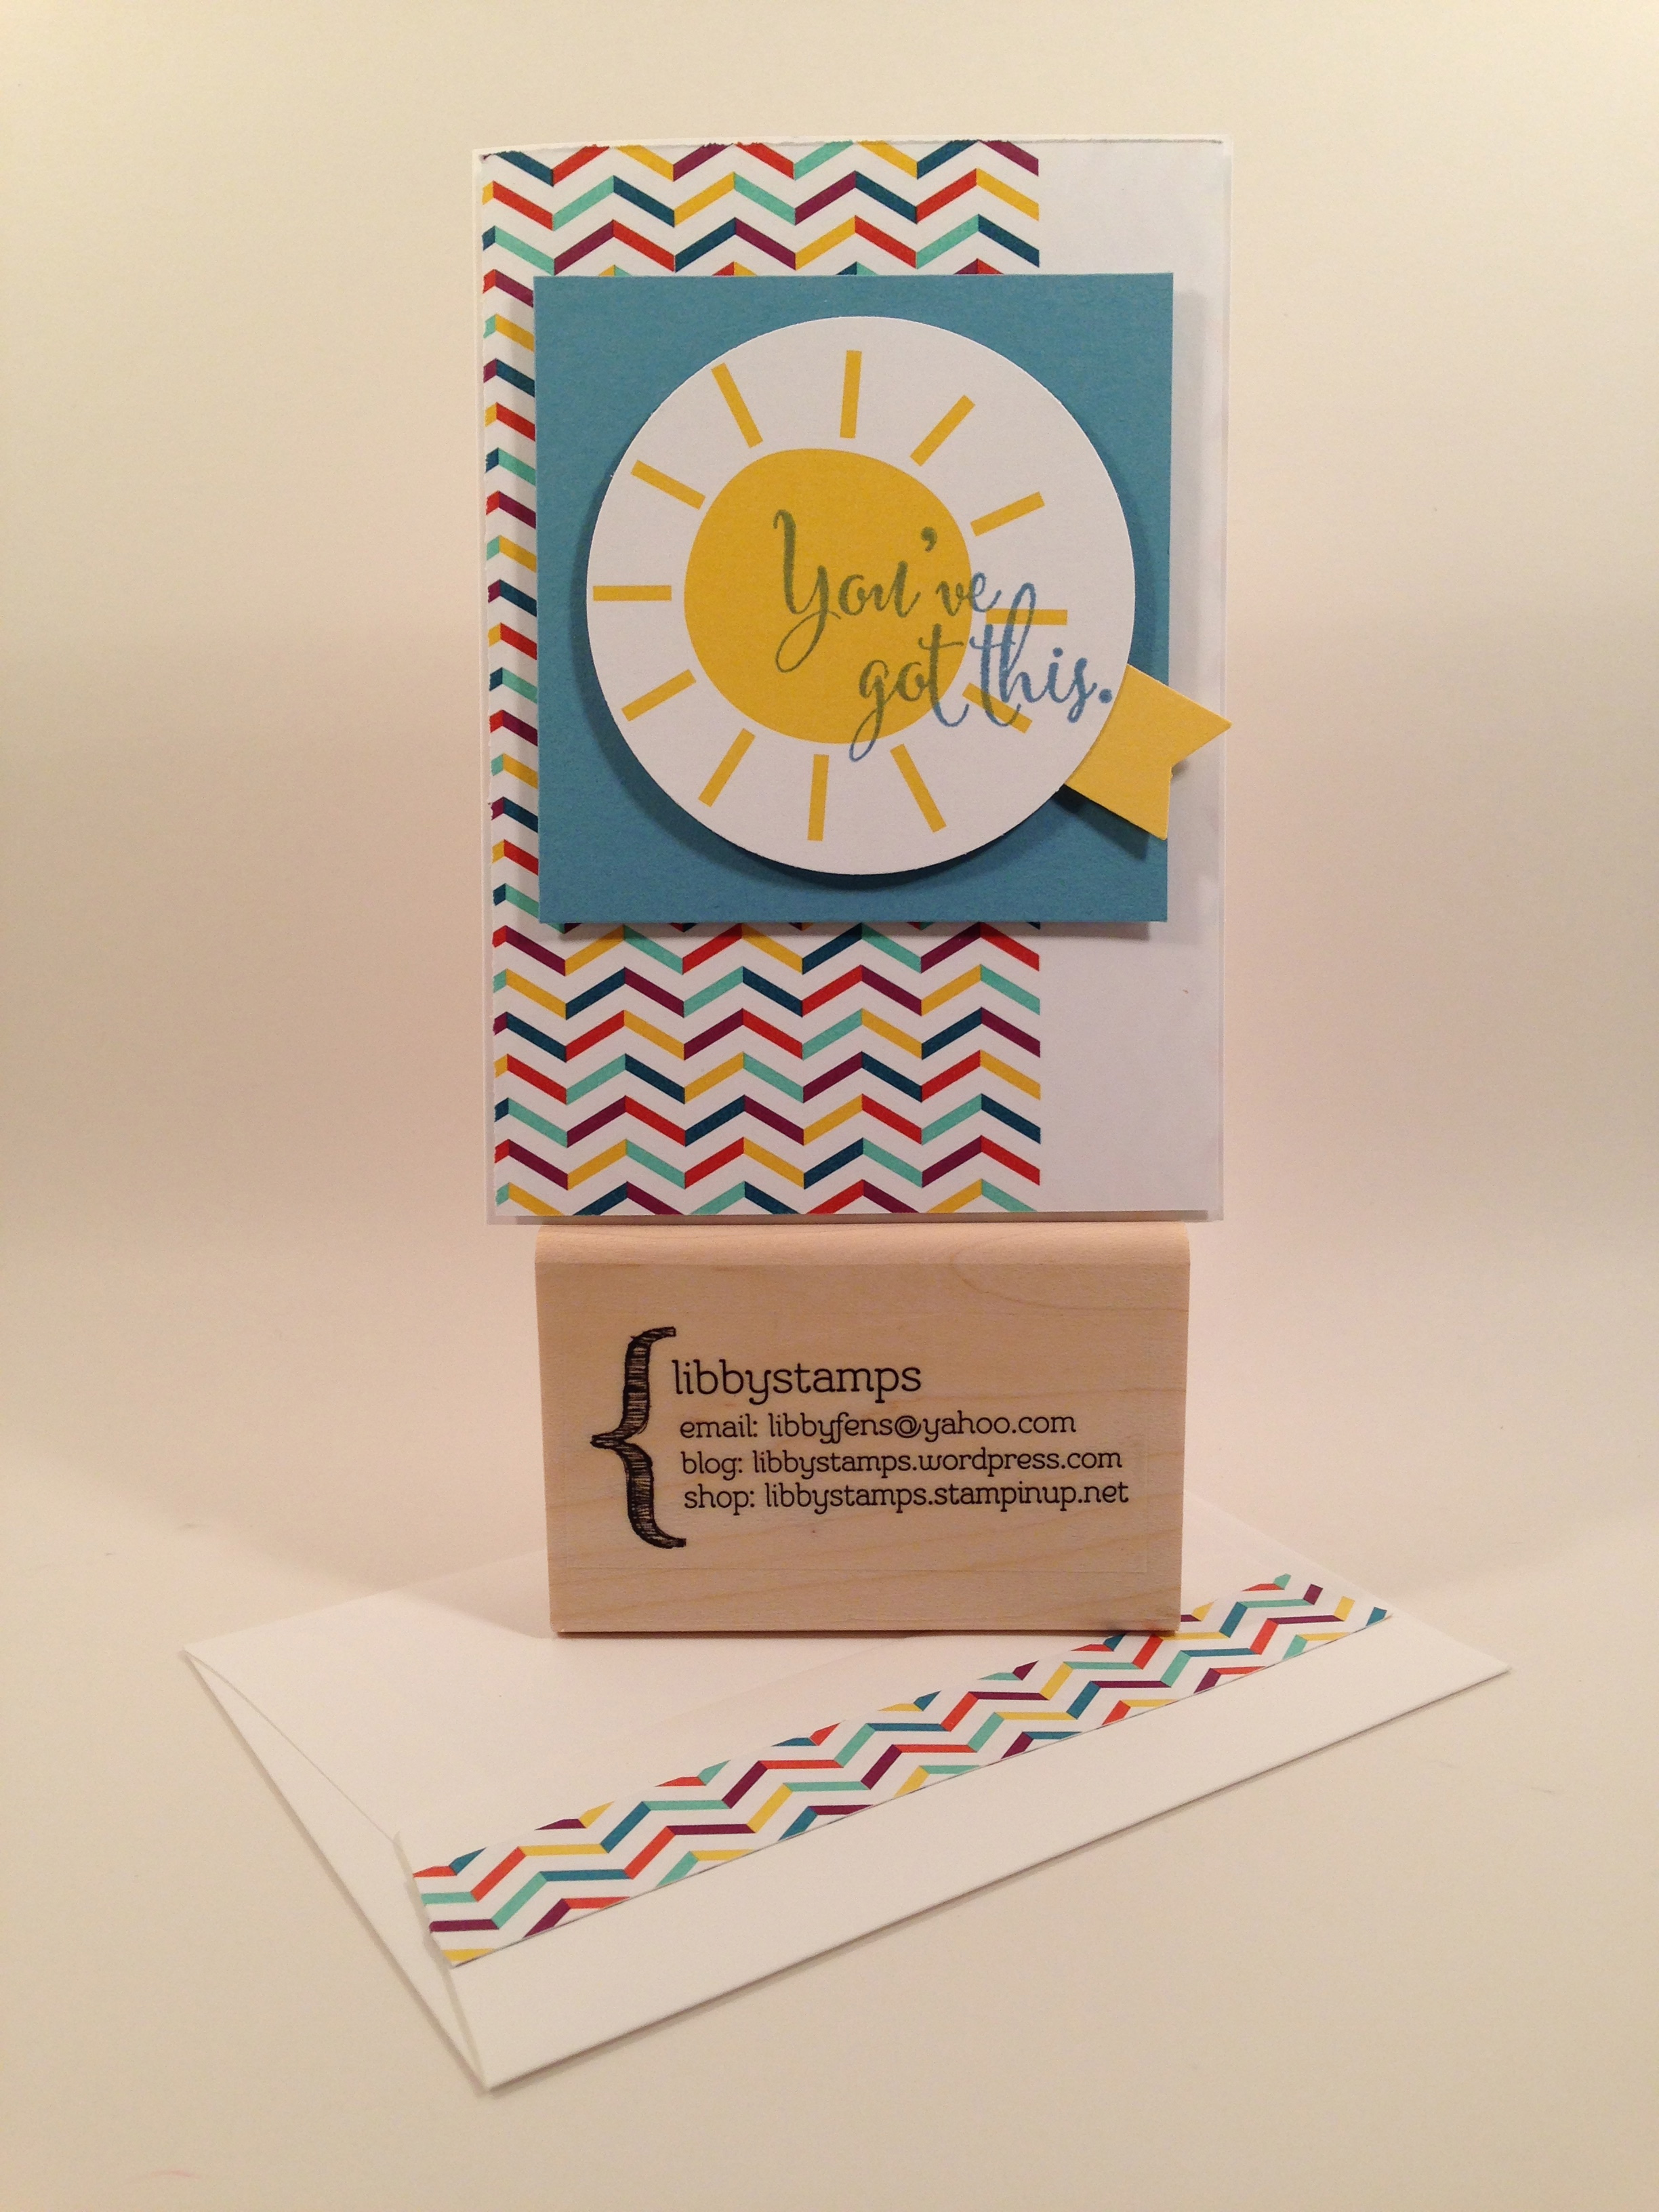 libbystamps, Stampin' Up stampinup, Sale-a-Bration 2015, You've Got This Stamp Set, This Day Project Life Mini Card Collection,